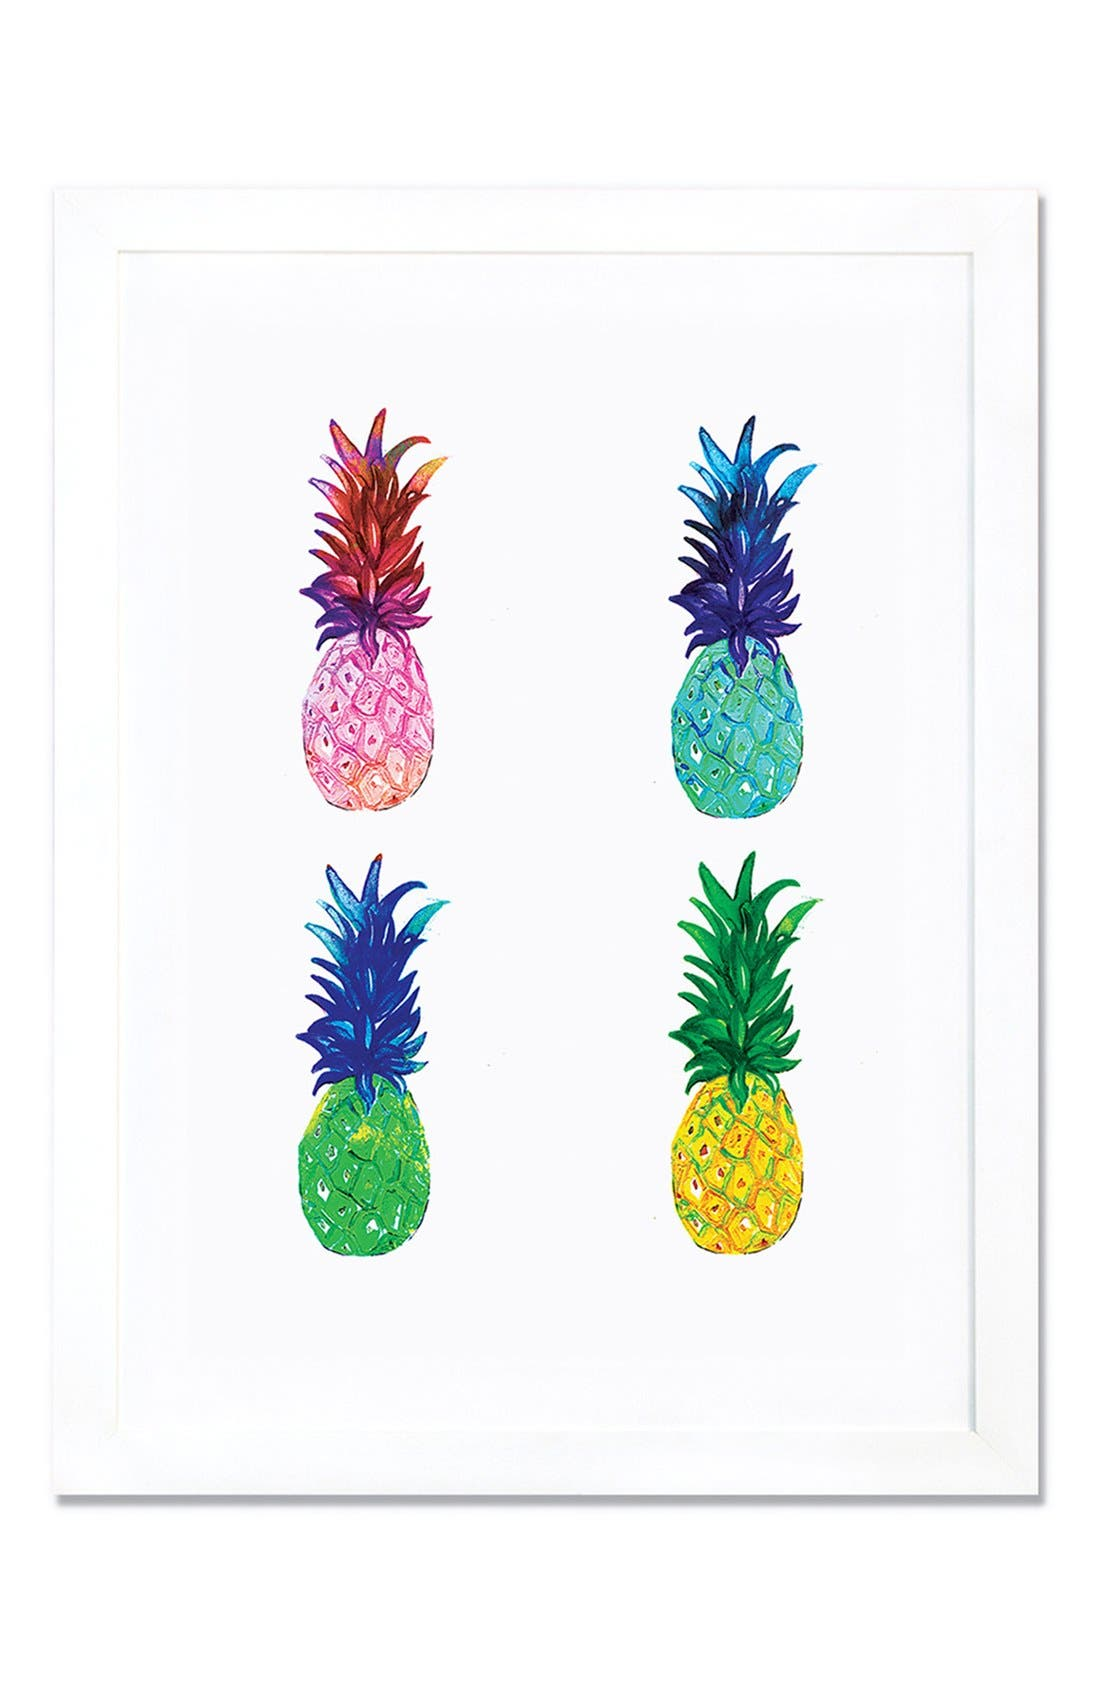 Alternate Image 1 Selected - iCanvas 'Pineapple' Giclée Print Framed Canvas Art